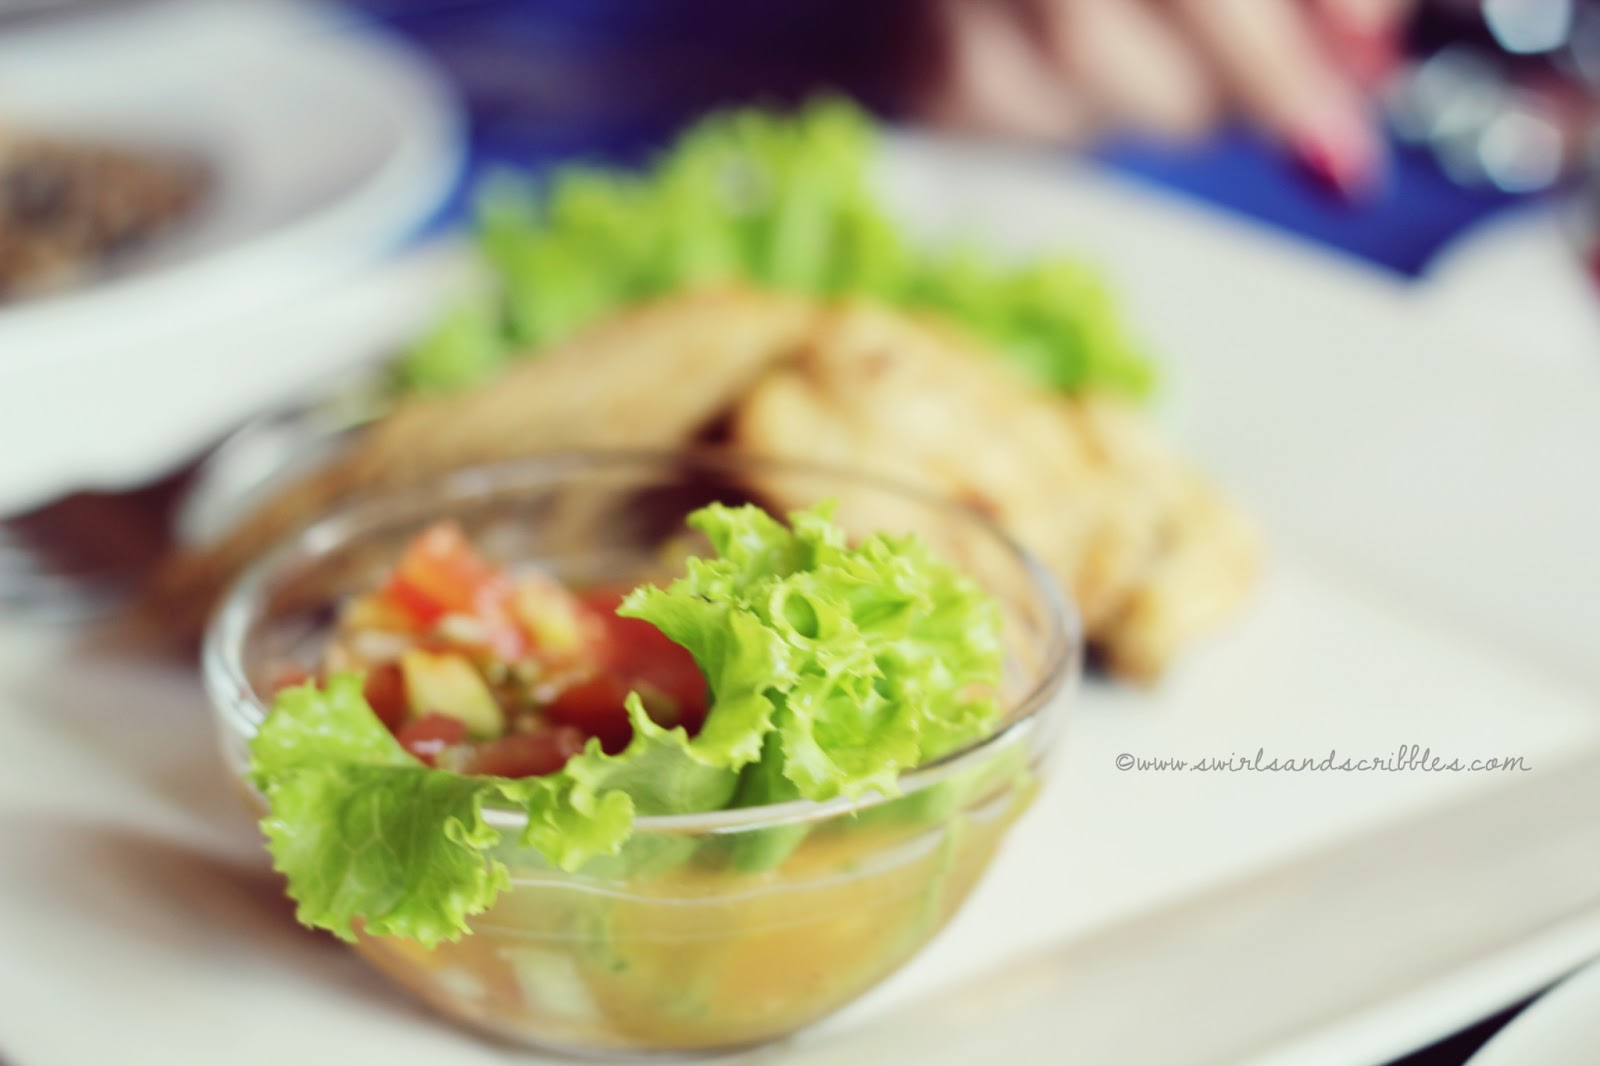 Breakfast Lunch And Dinner At Terraza Cafe Club Balai